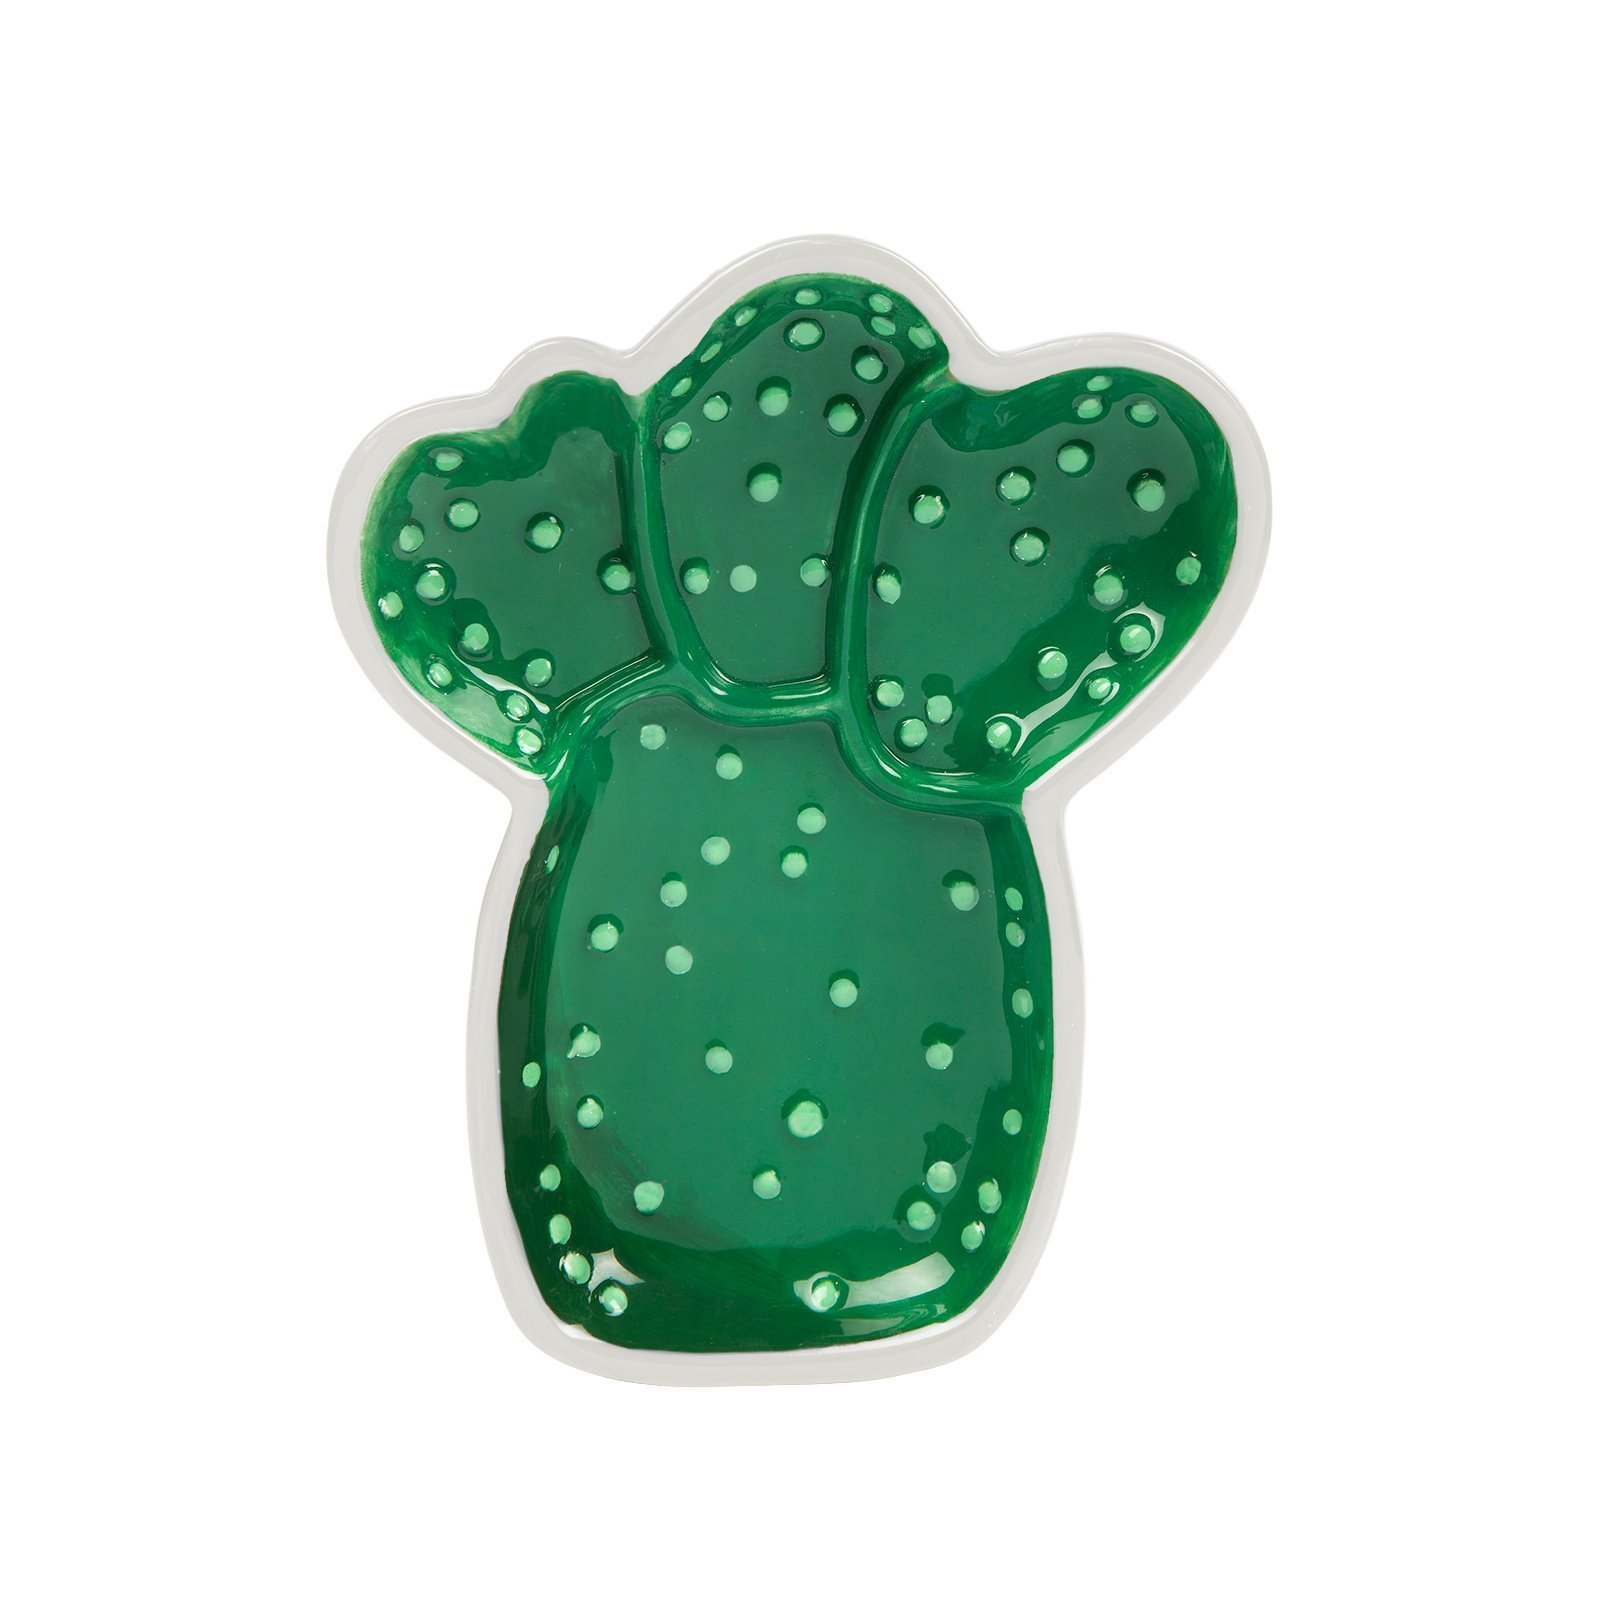 SunnyLIFE Ceramic Trinket Tray - Candy, Rings & Jewelry Dish - Cactus Green